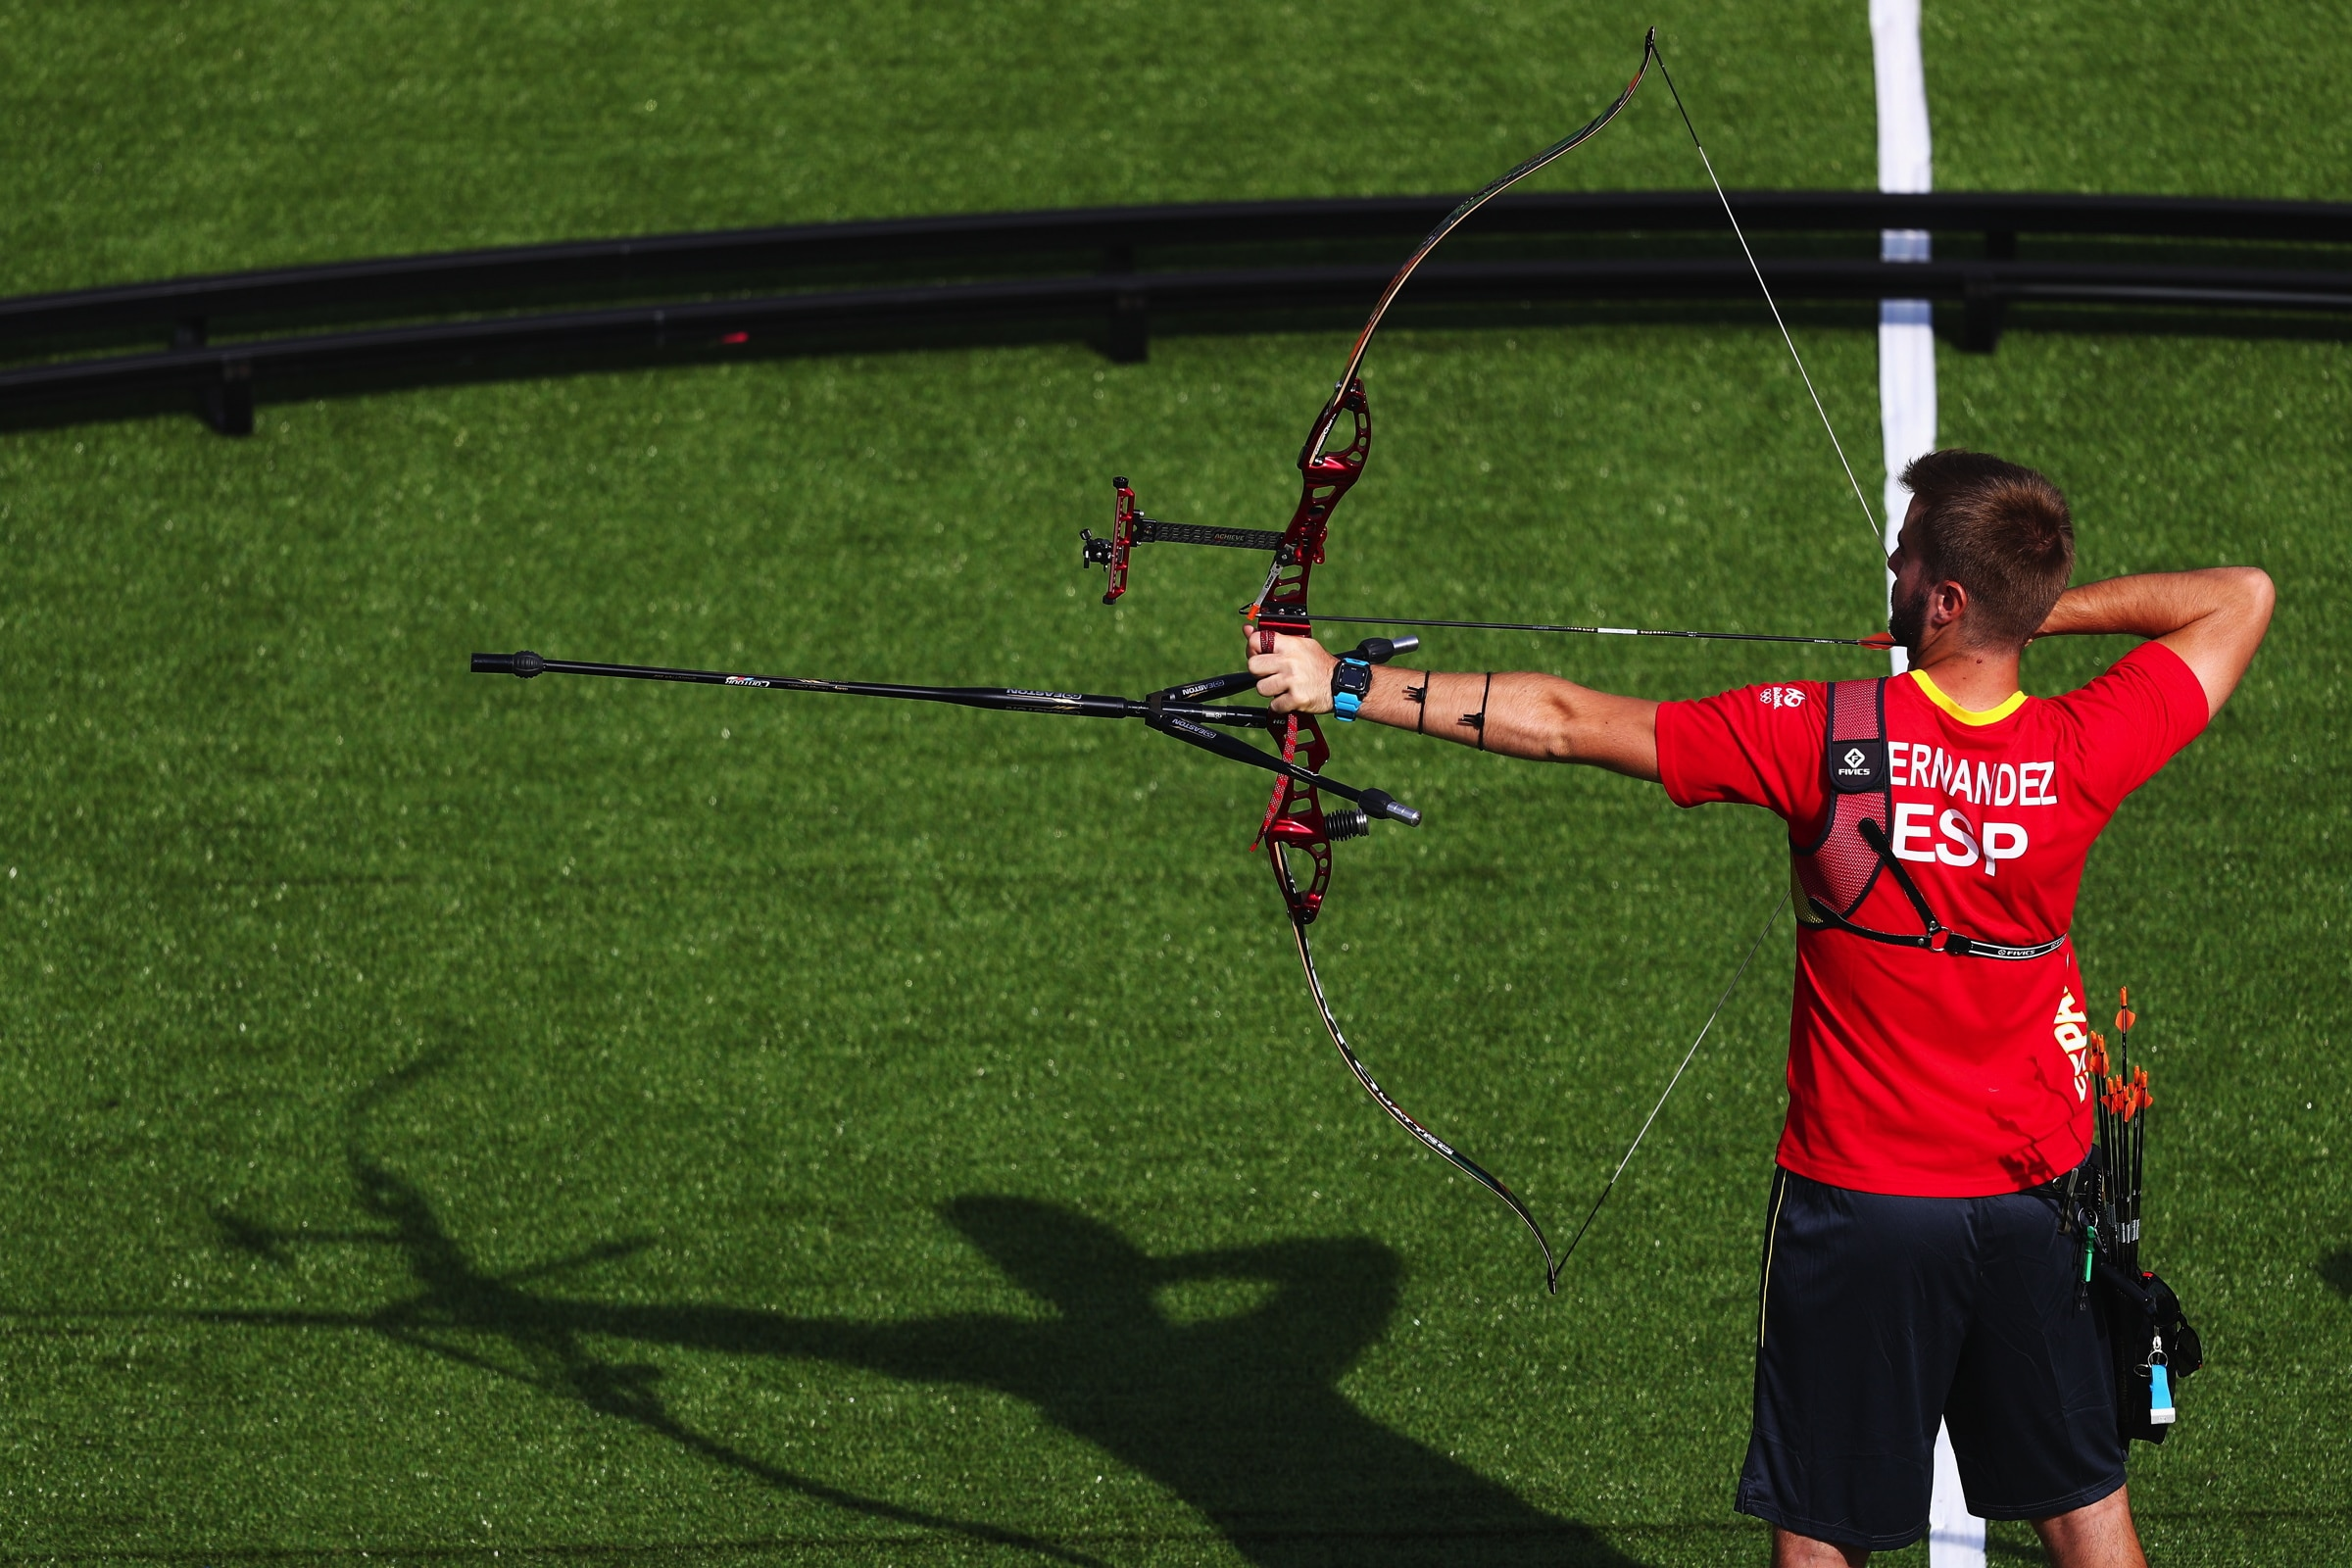 Archery Men's team